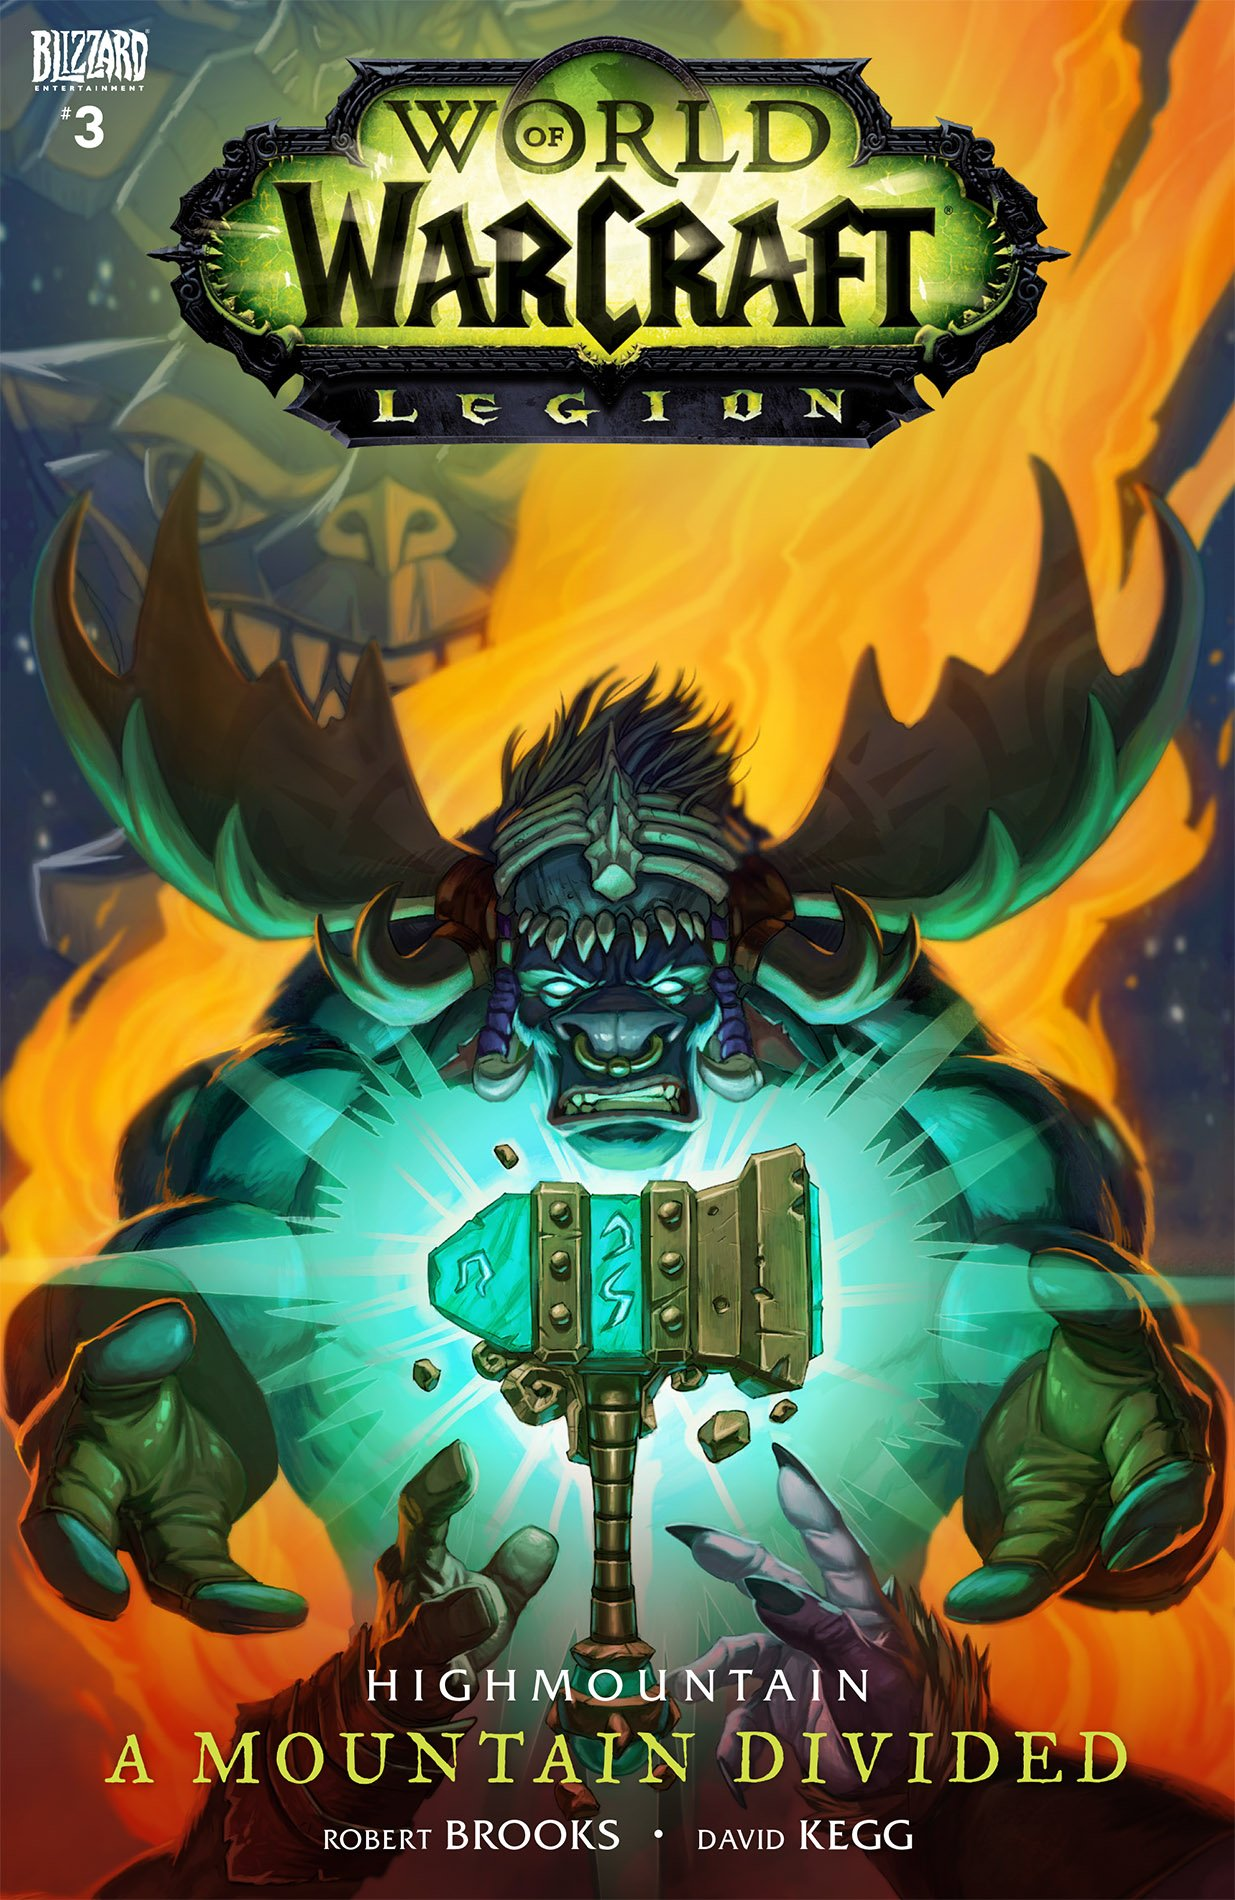 World of Warcraft - Legion 03 - Highmountain: A Mountain Divided (July 2016)